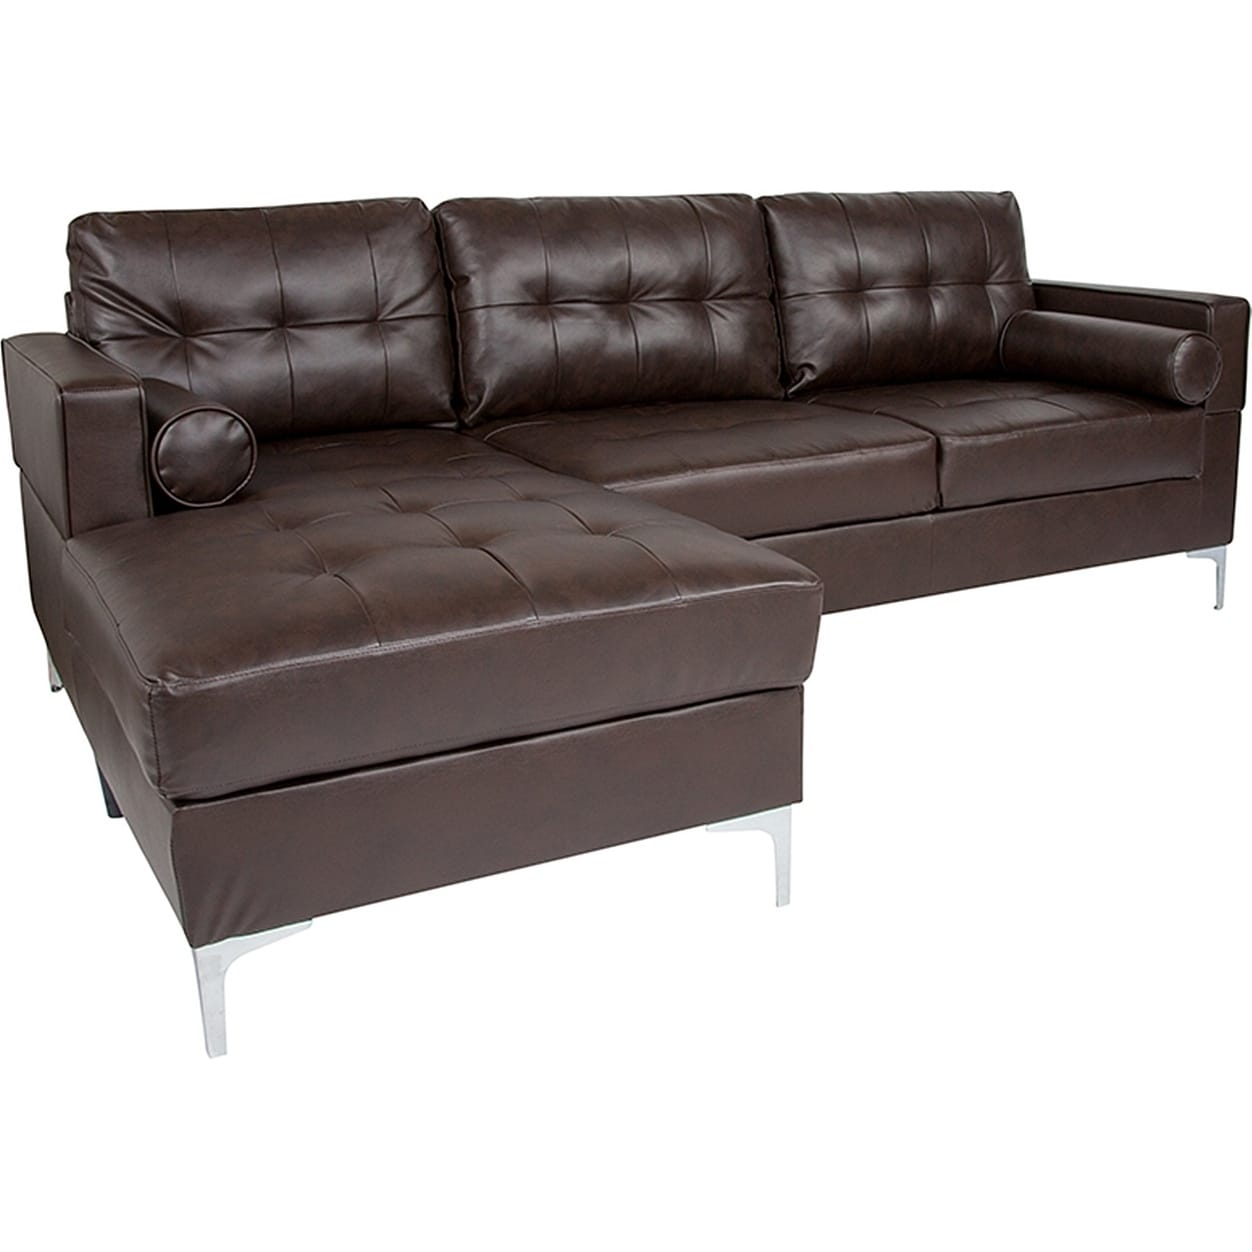 Bellmore 2 Piece Brown Leather Sectional Sofa With Left Facing Chaise Leather Sectional Sofas Leather Sectional Sectional Sofa